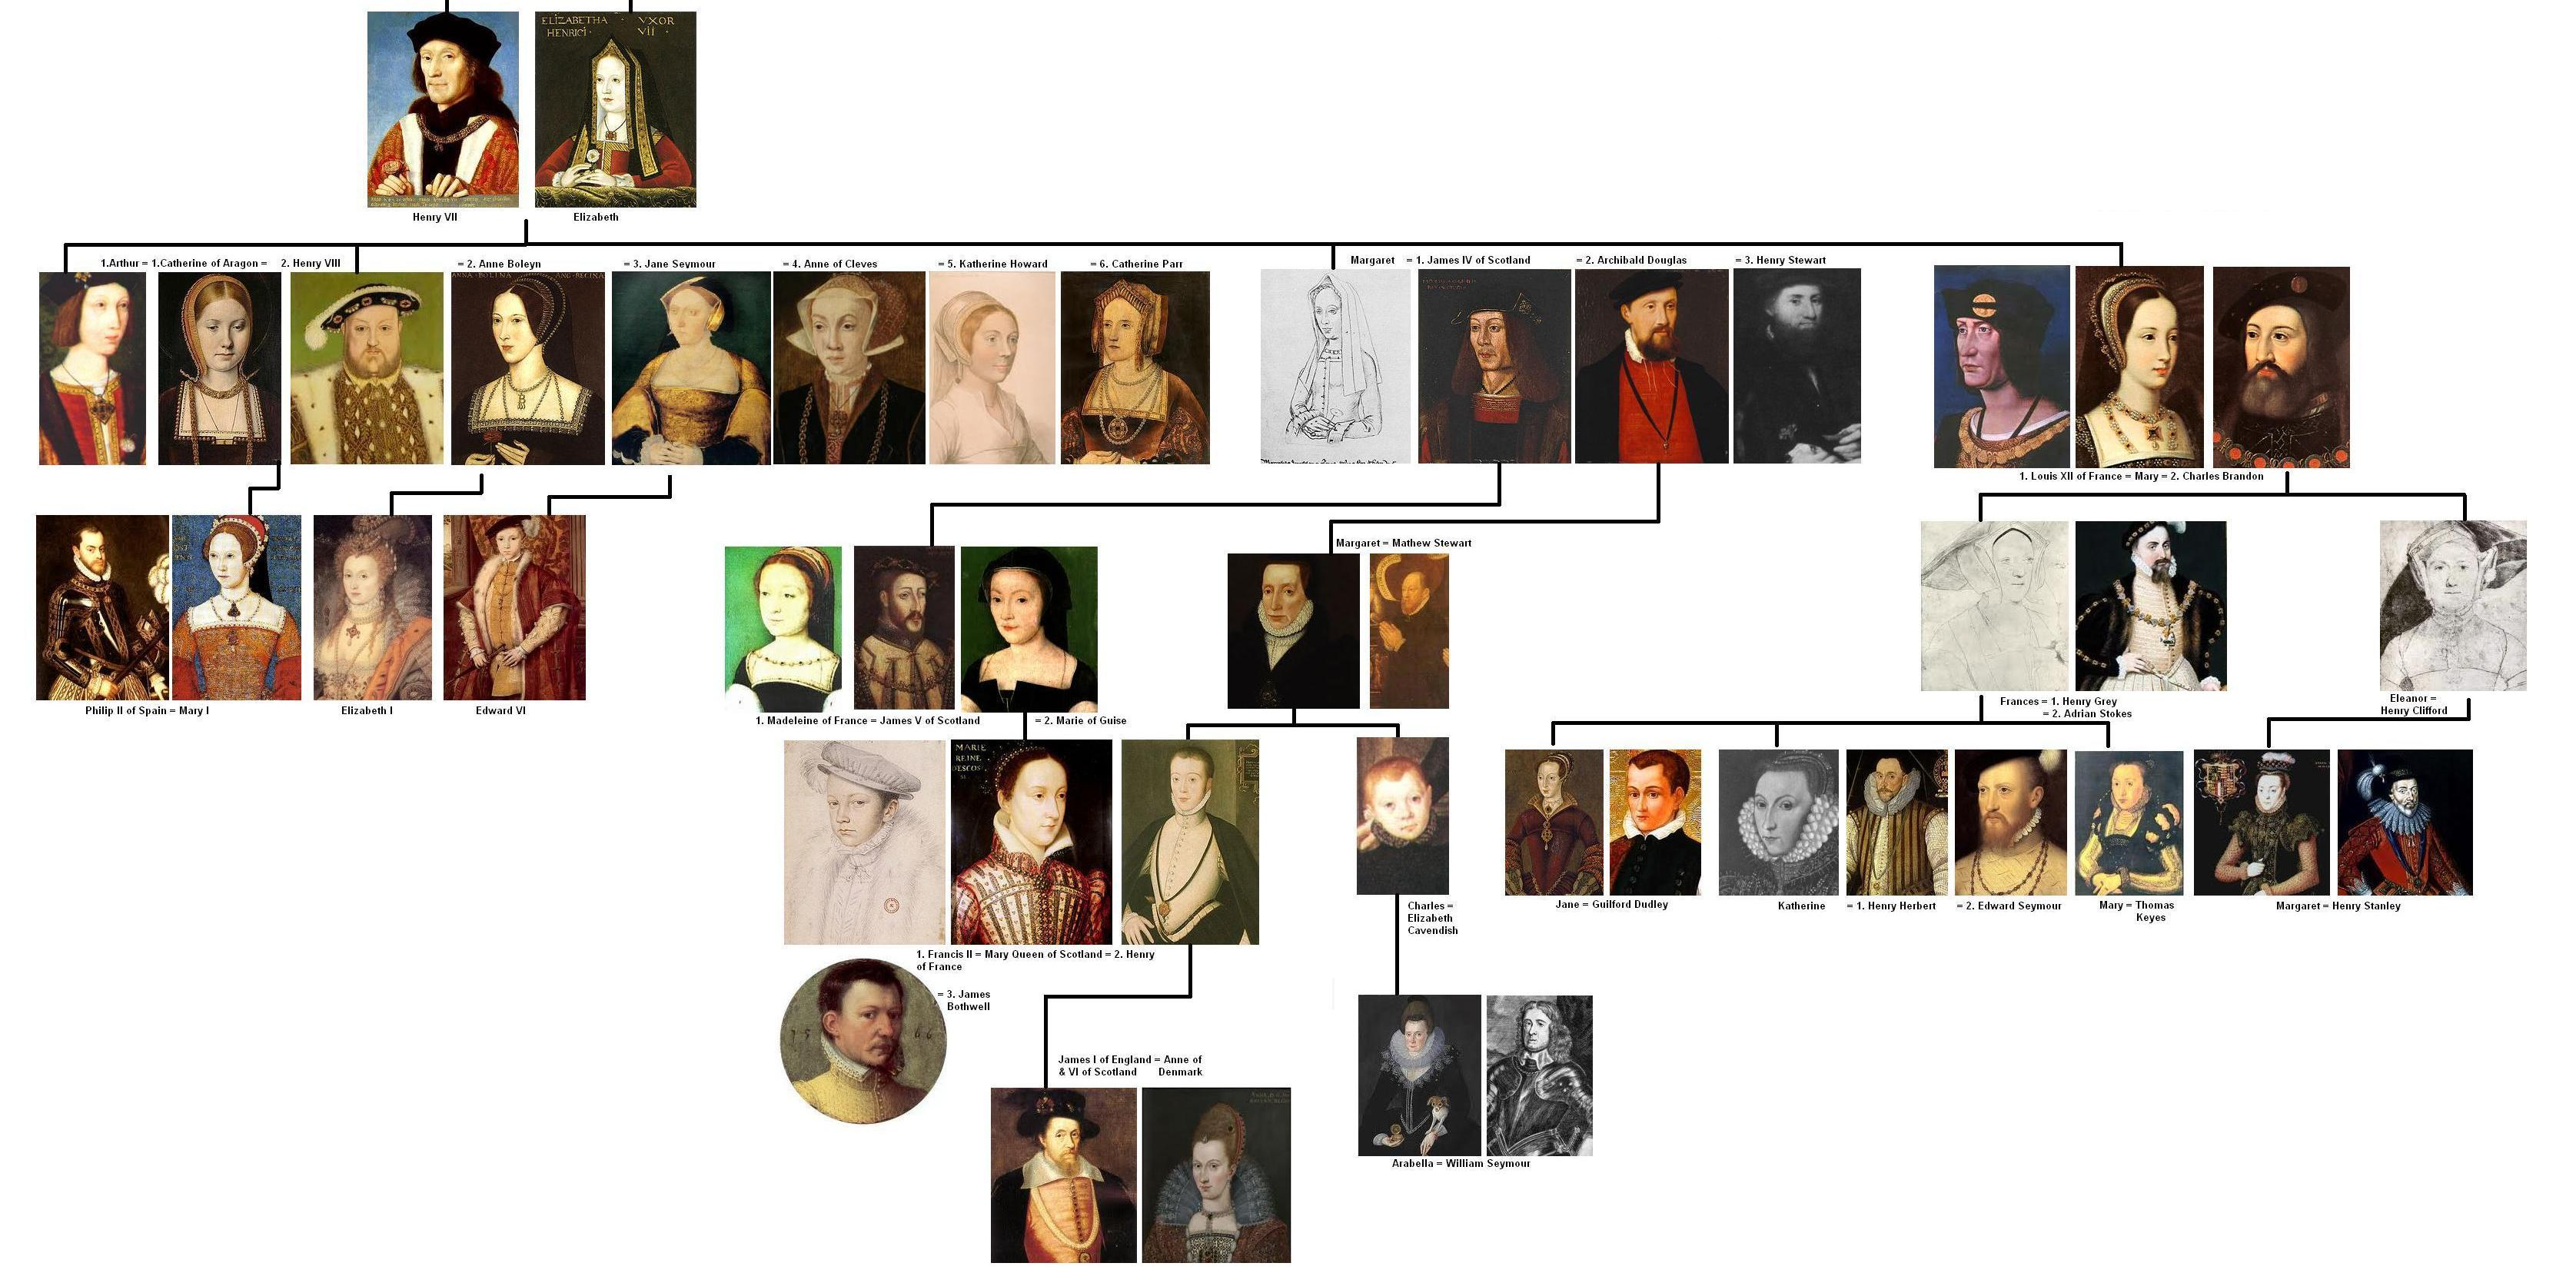 Mary Queen Of Scots >> File:The Tudors.JPG - Wikipedia